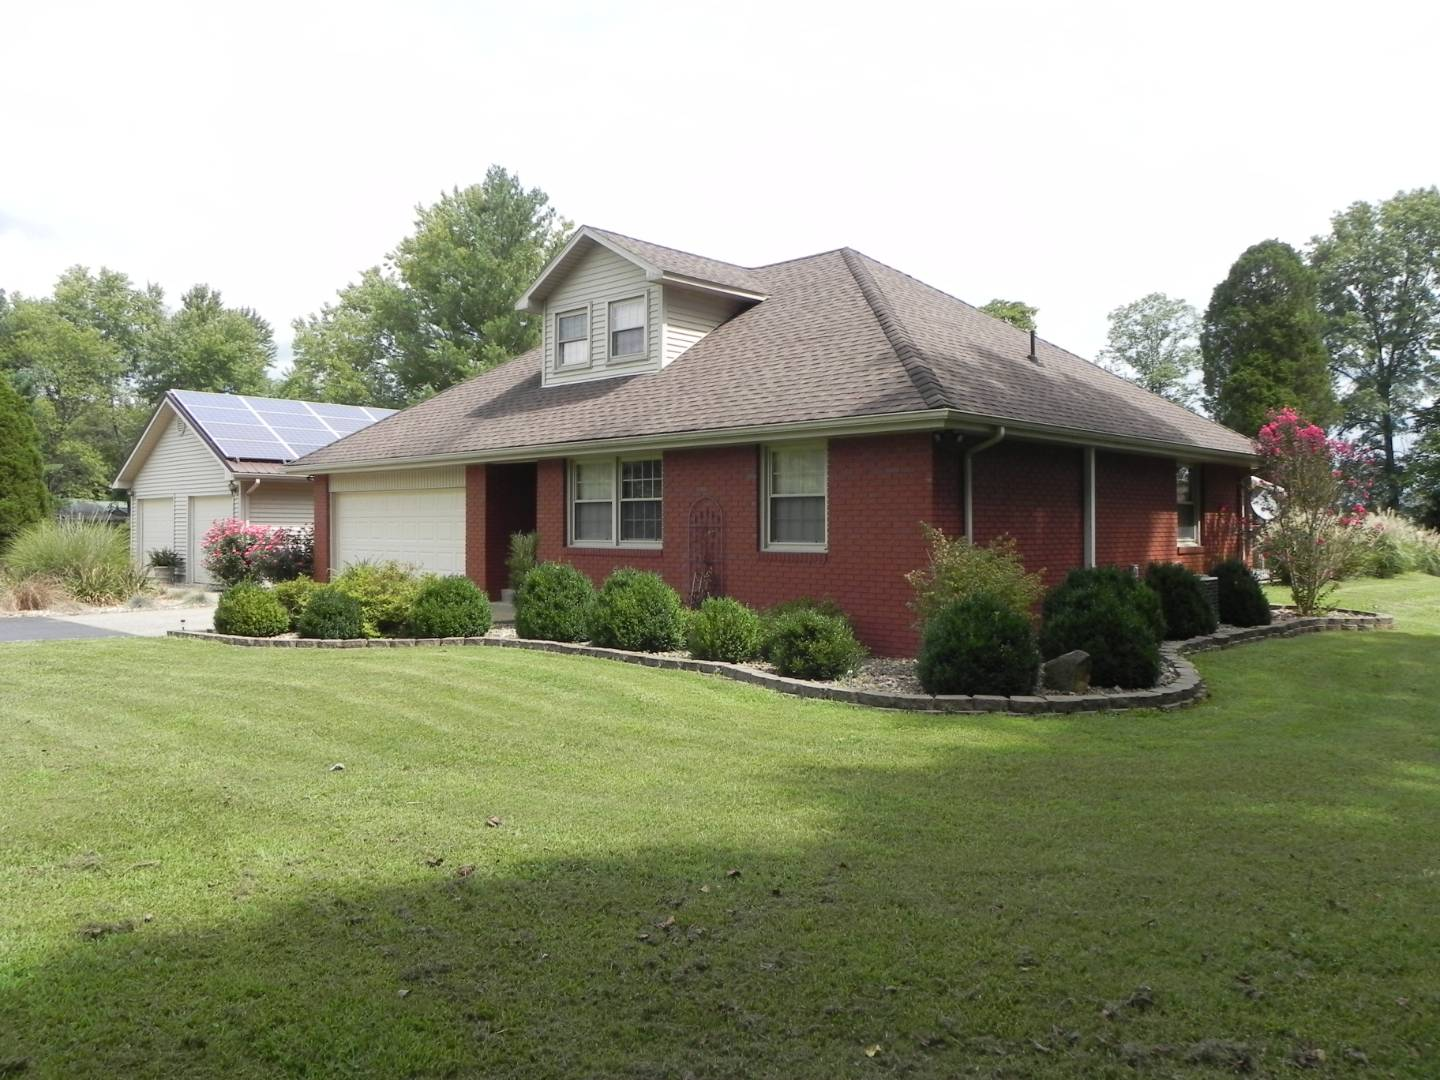 Home on 3.5 Acres with Inground Pool & Large Detached Garage!